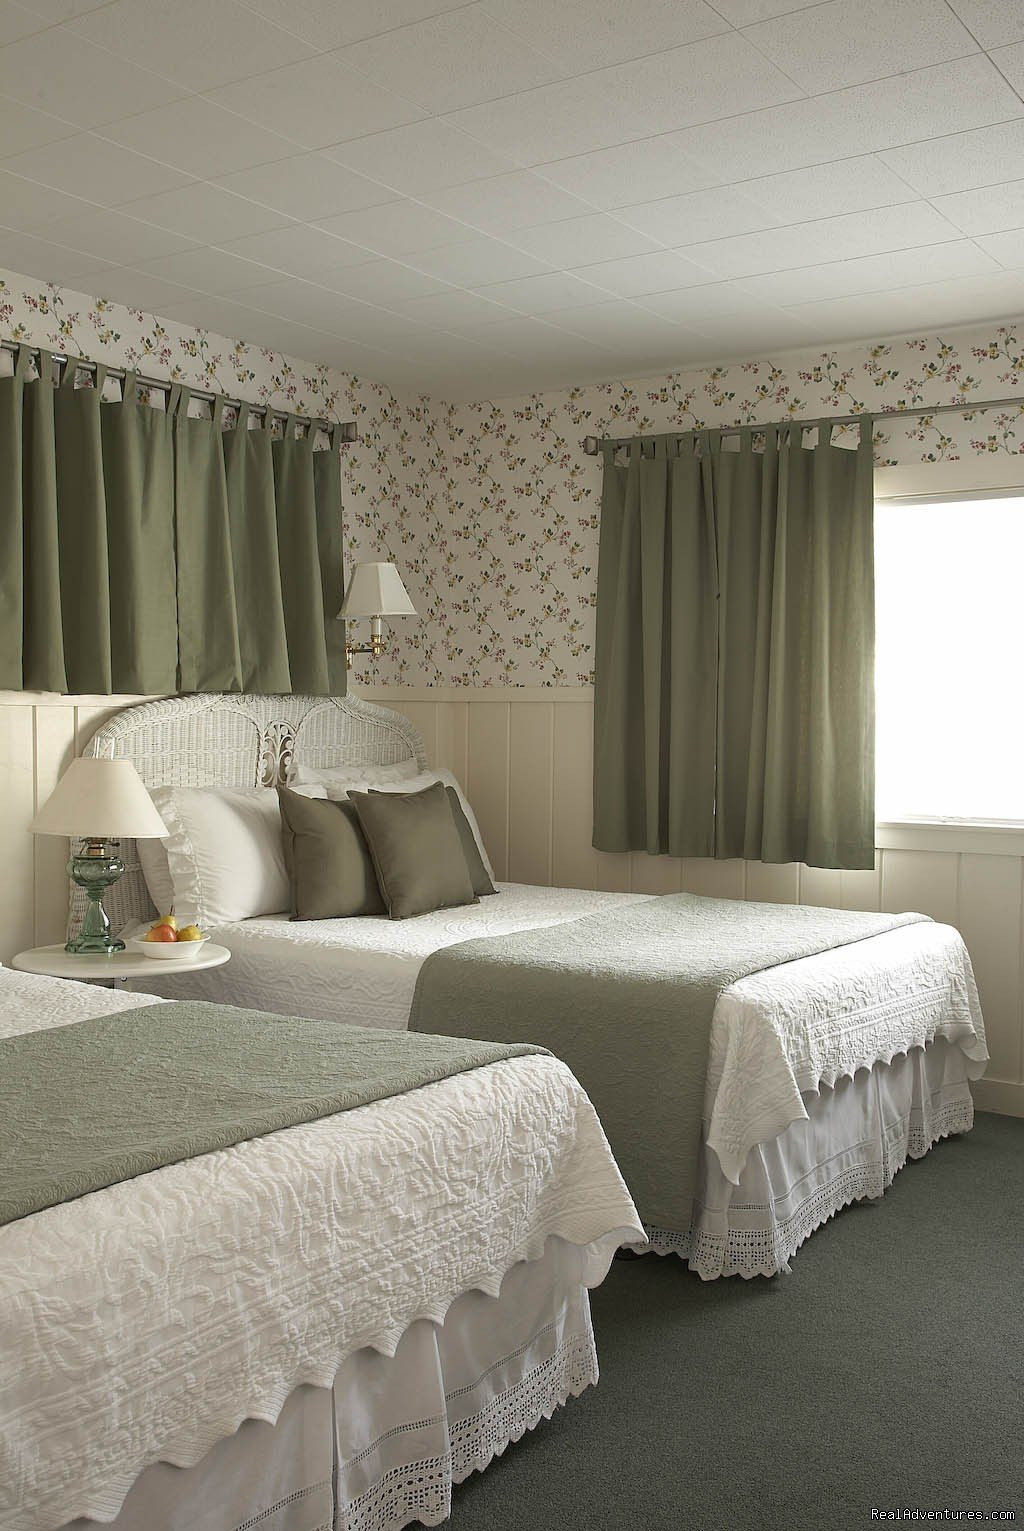 Classic Cottage Suite #9 | Image #11/18 | Maine Stay Inn - Premier Kennebunkport B&B